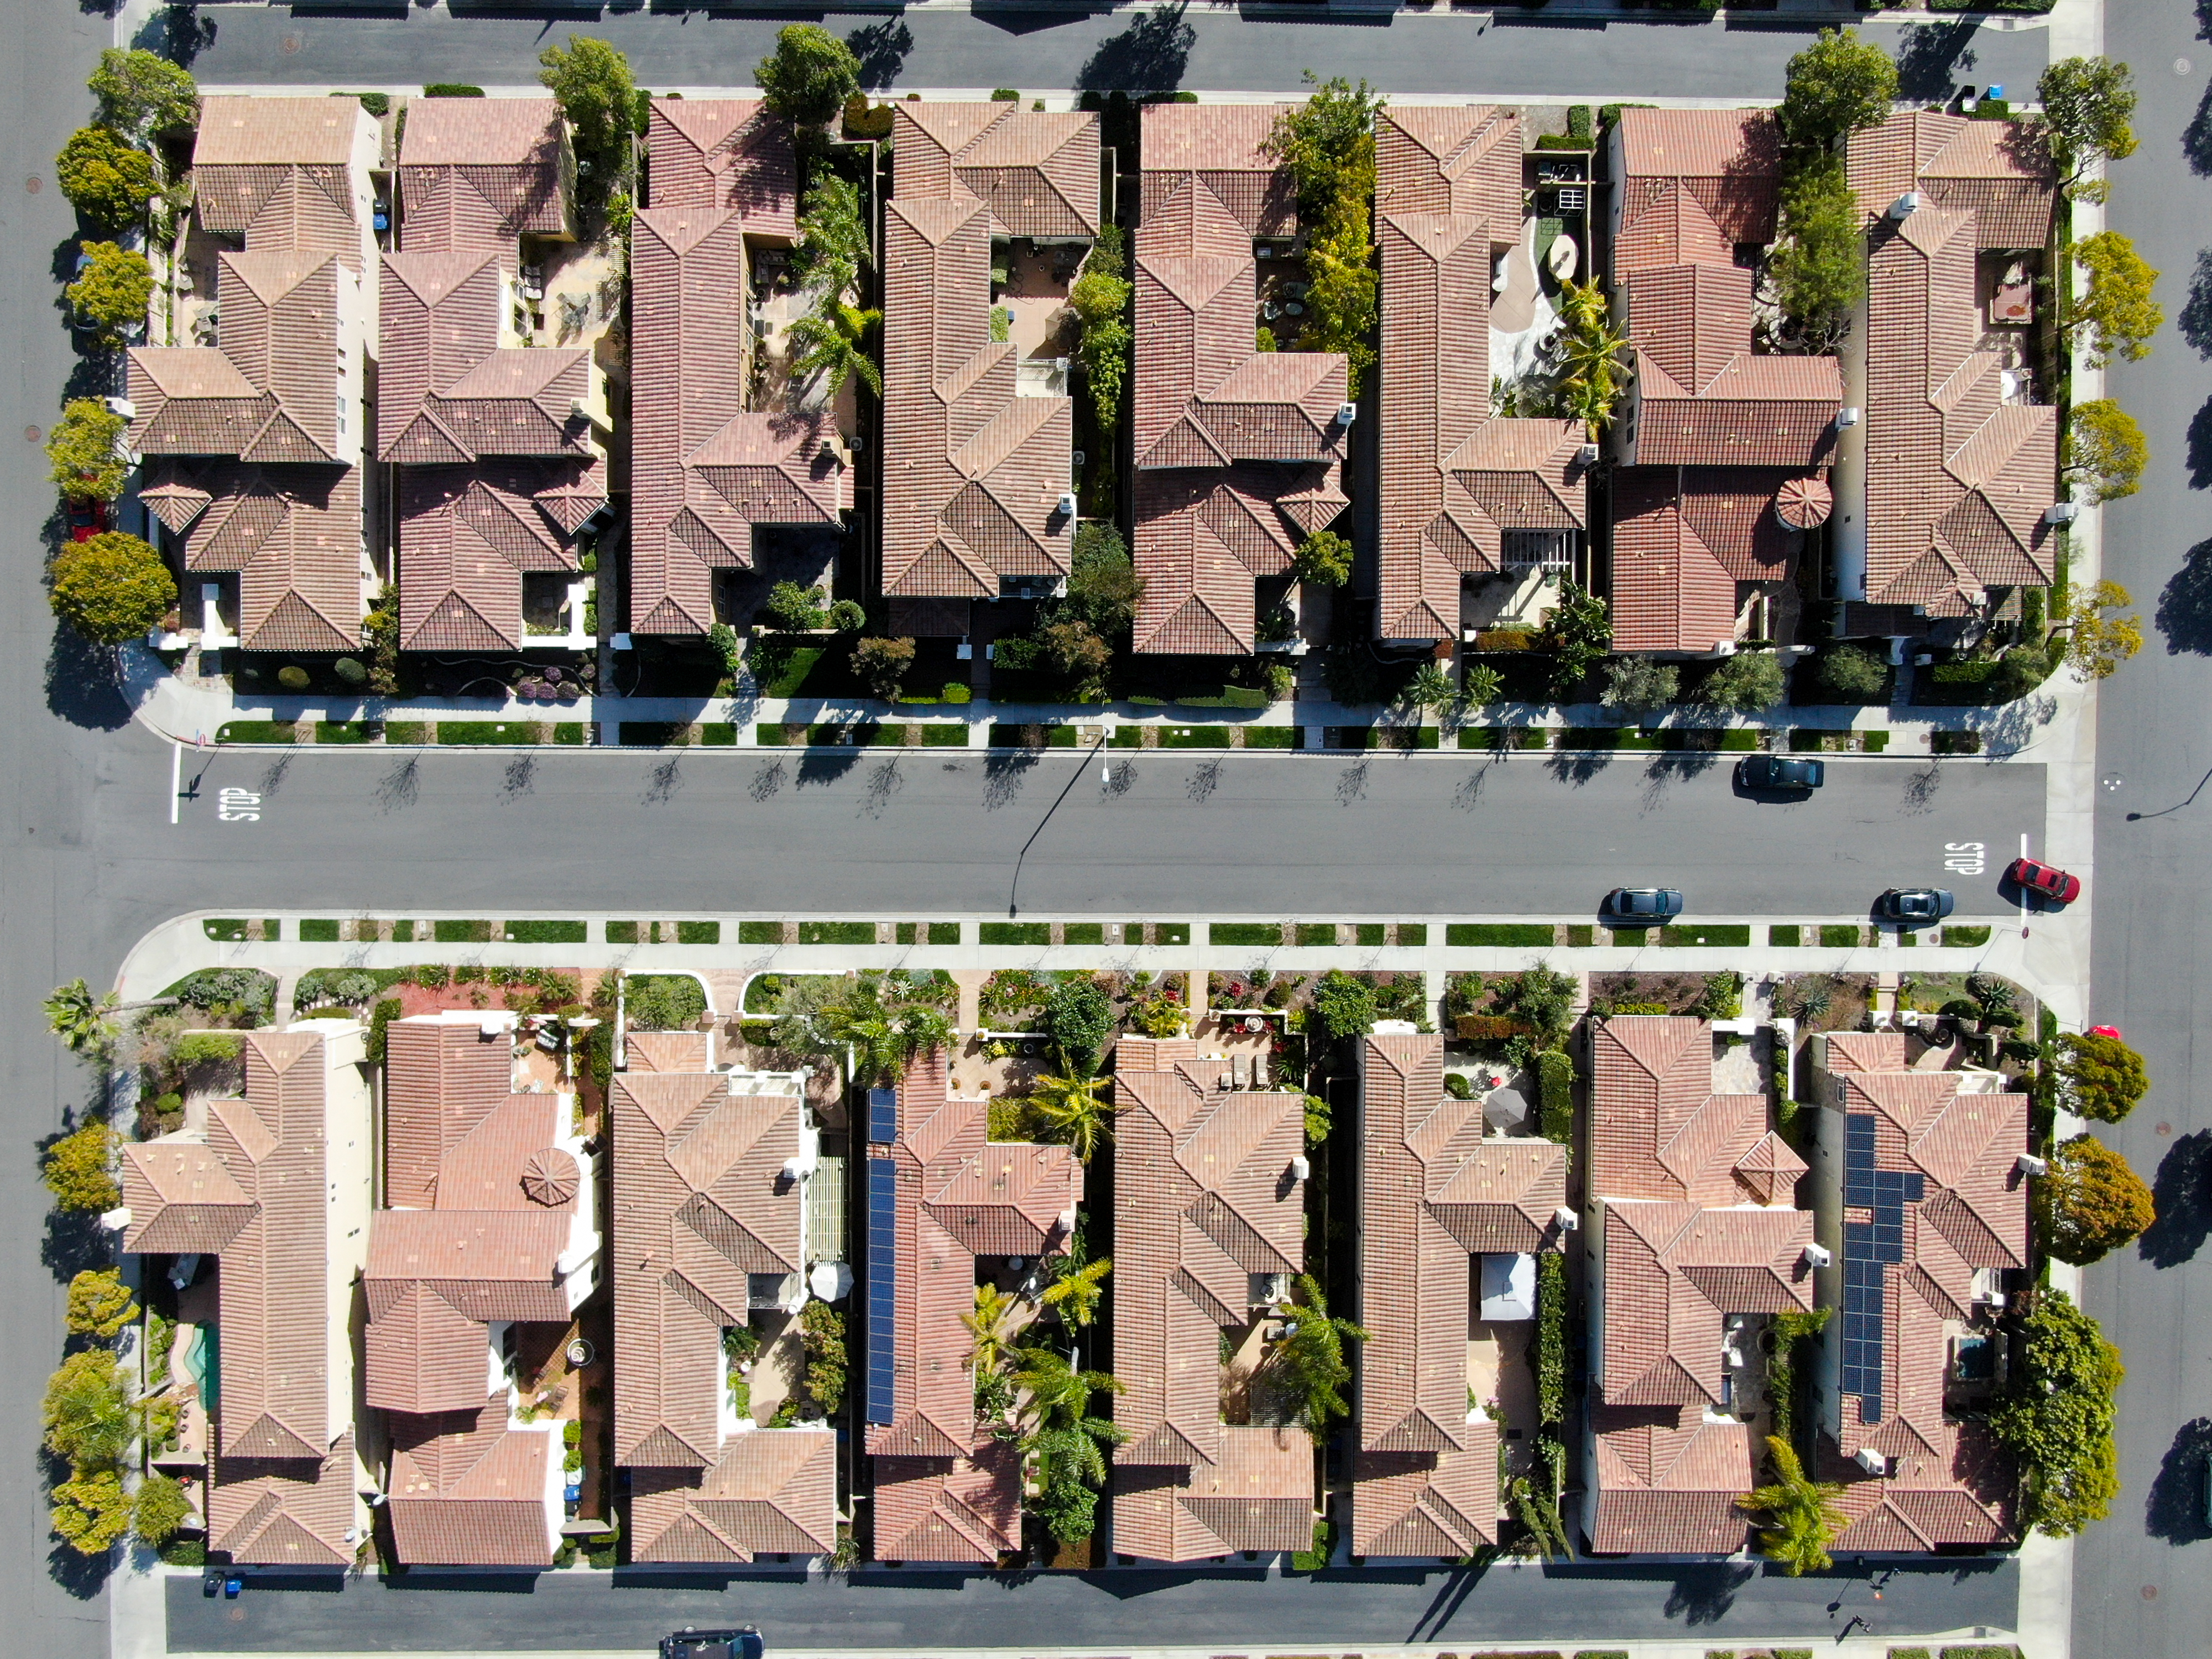 An aerial view of two rows of houses.